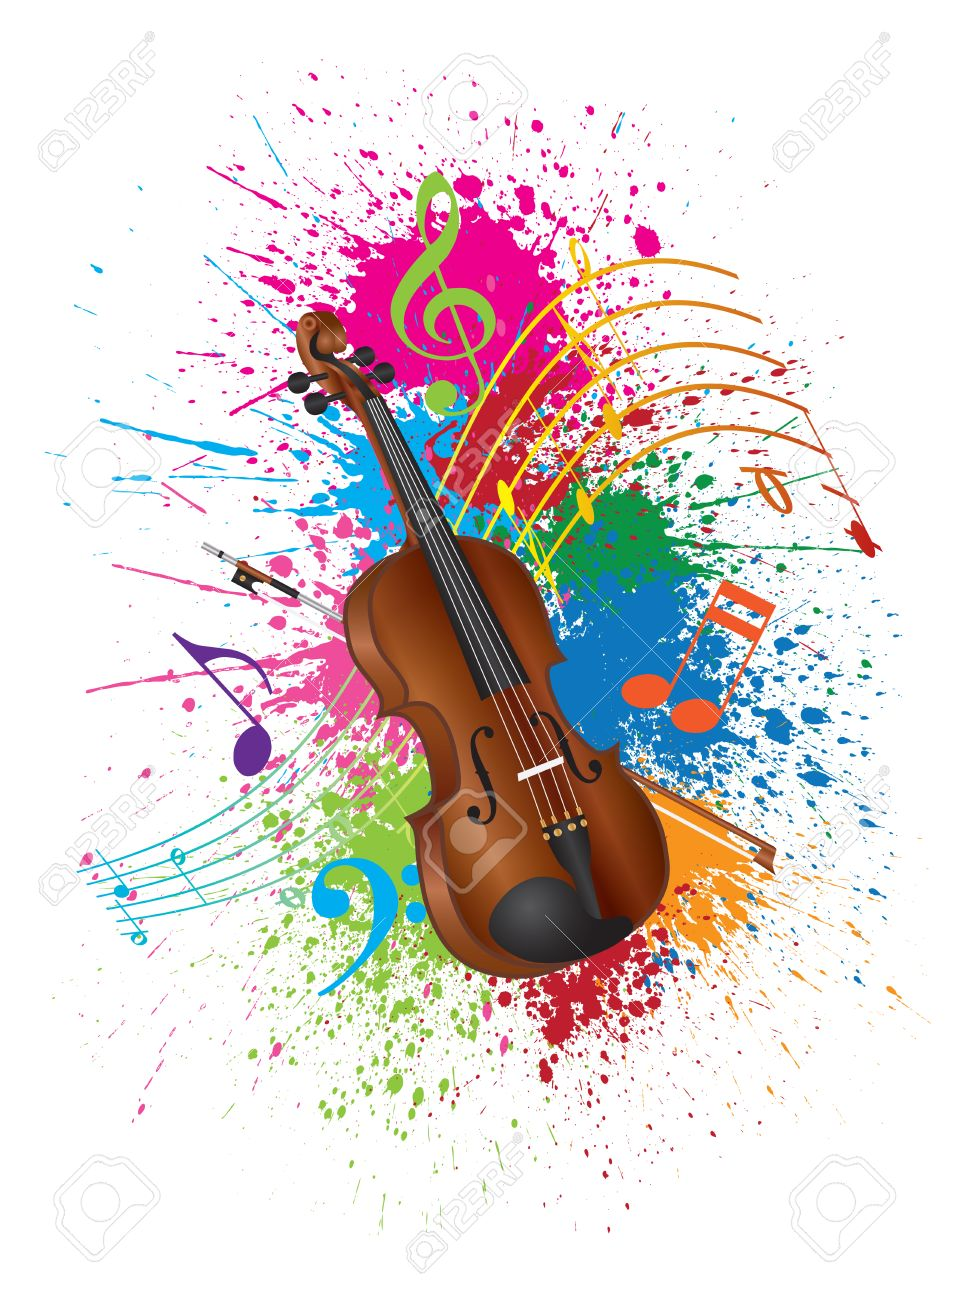 violin with bow and paint splatter abstract color isolated on